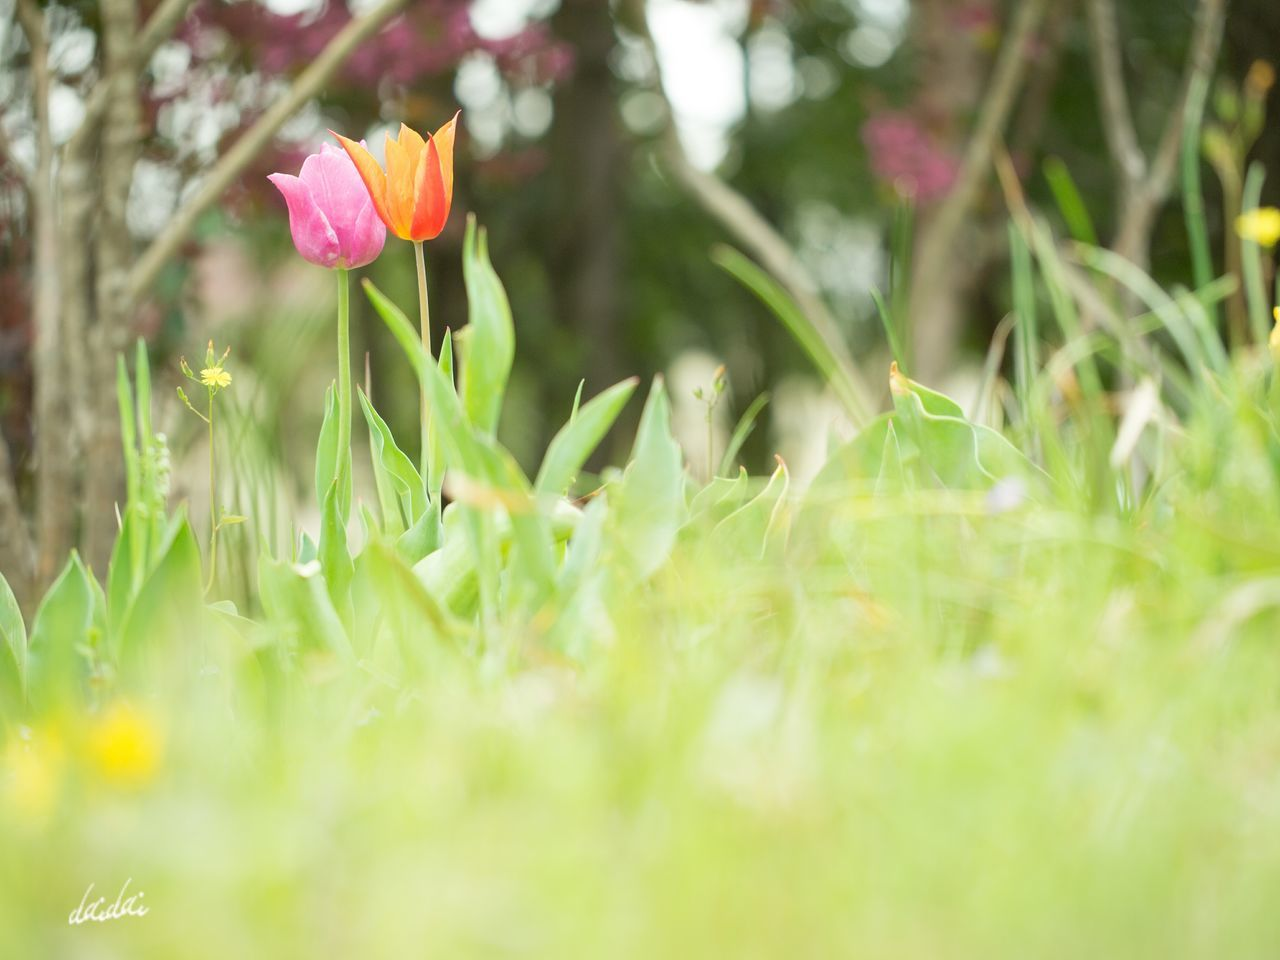 You and I in the daydream E-PL3 Fukuokadeeps Flower 花 RAW 編集 チューリップ Tulip 海の中道海浜公園 Bokeh